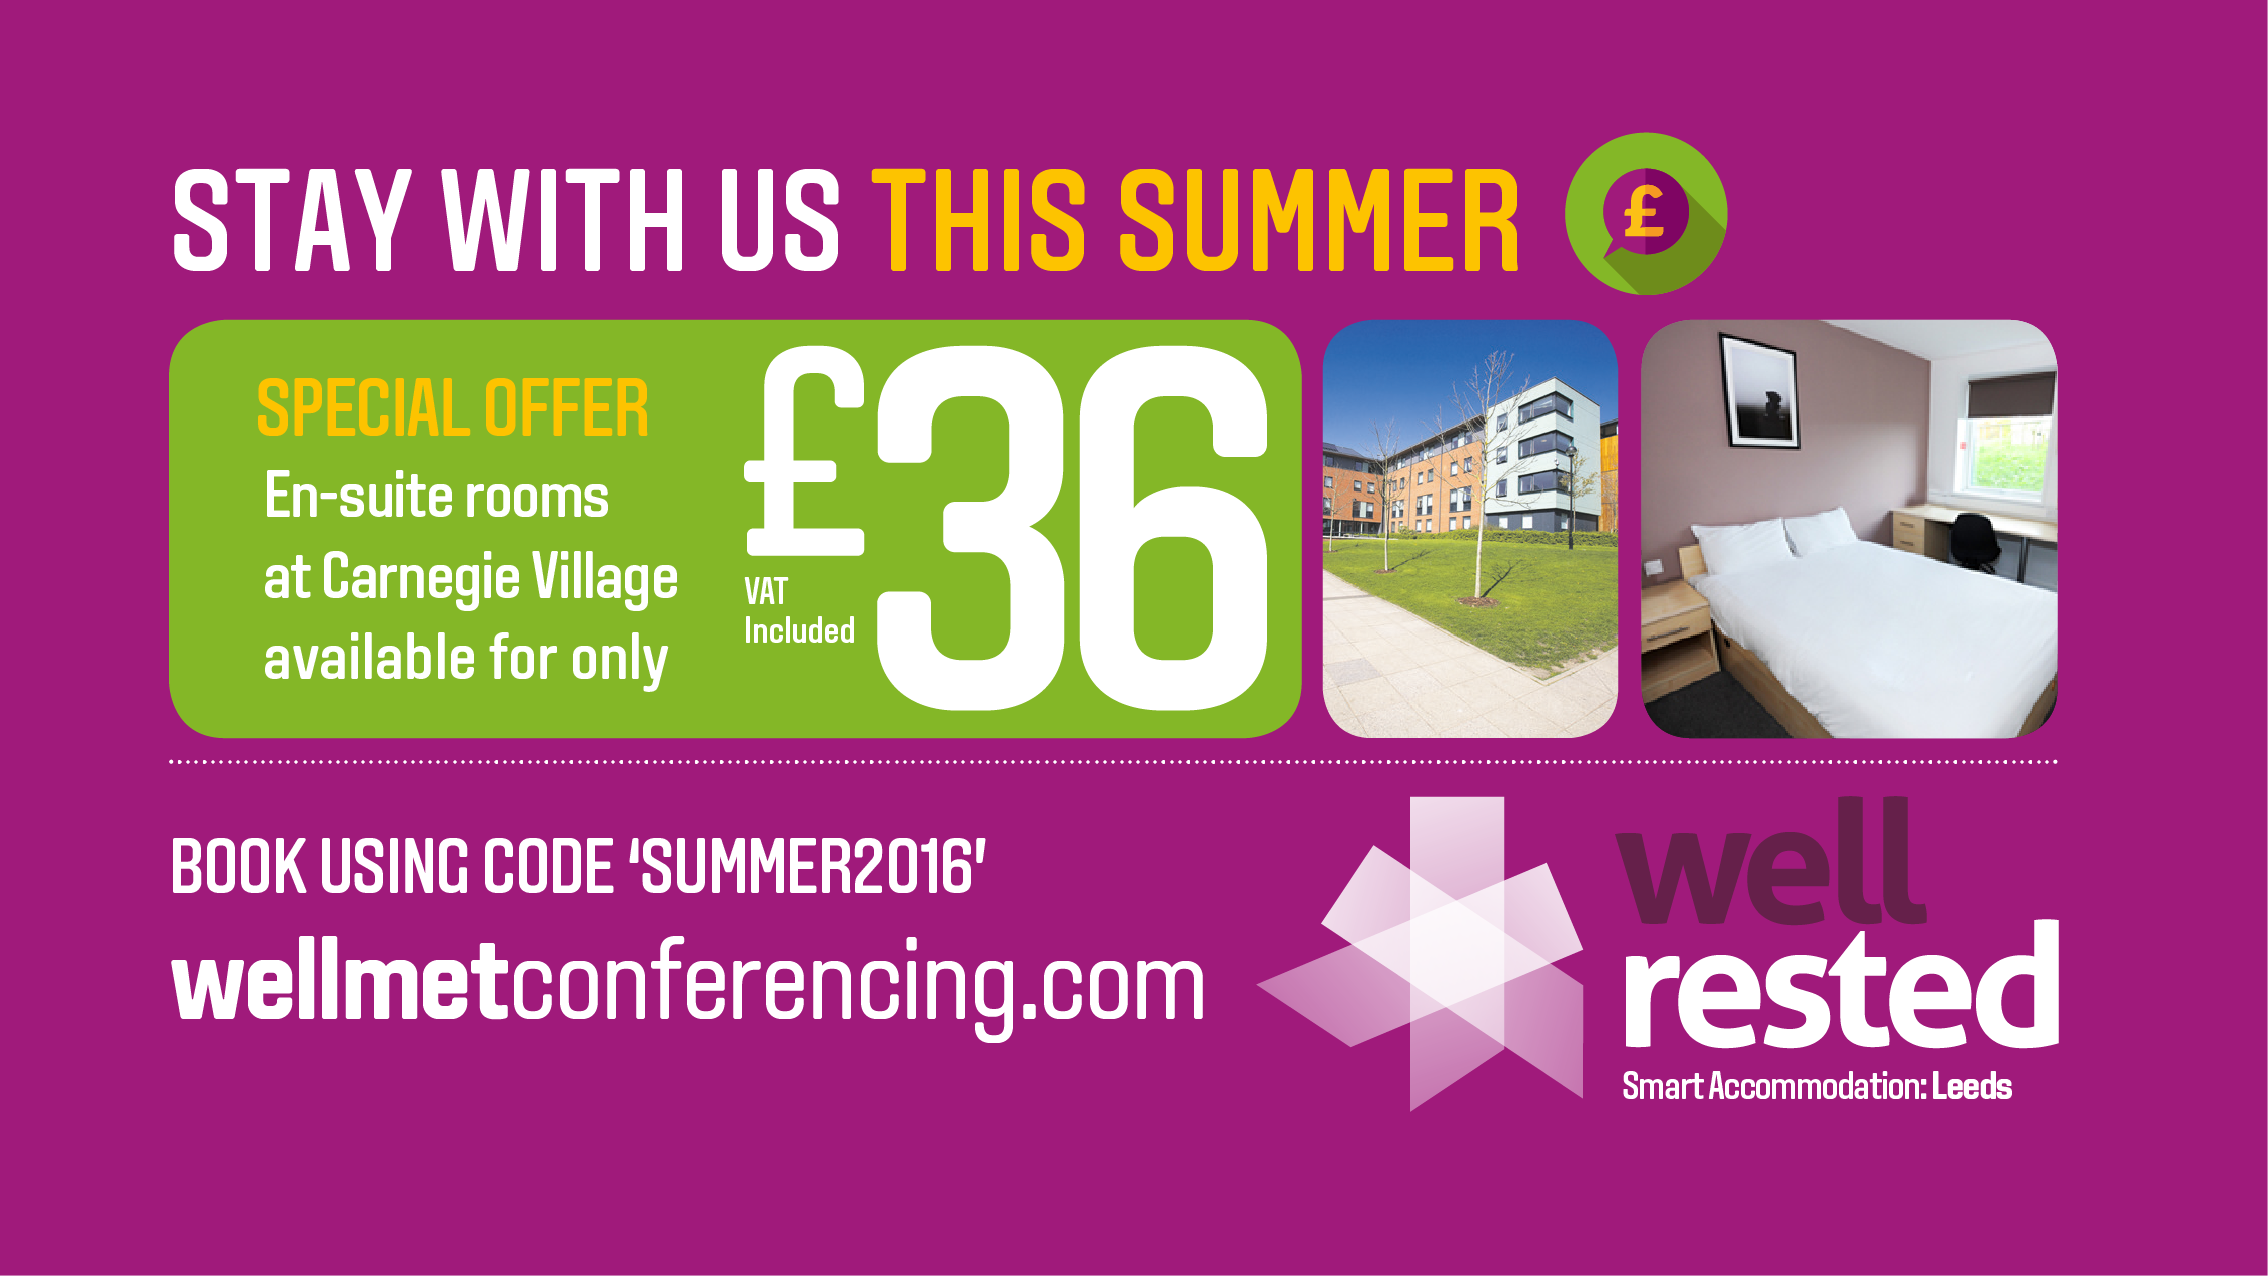 Book your room with us this summer for just £36